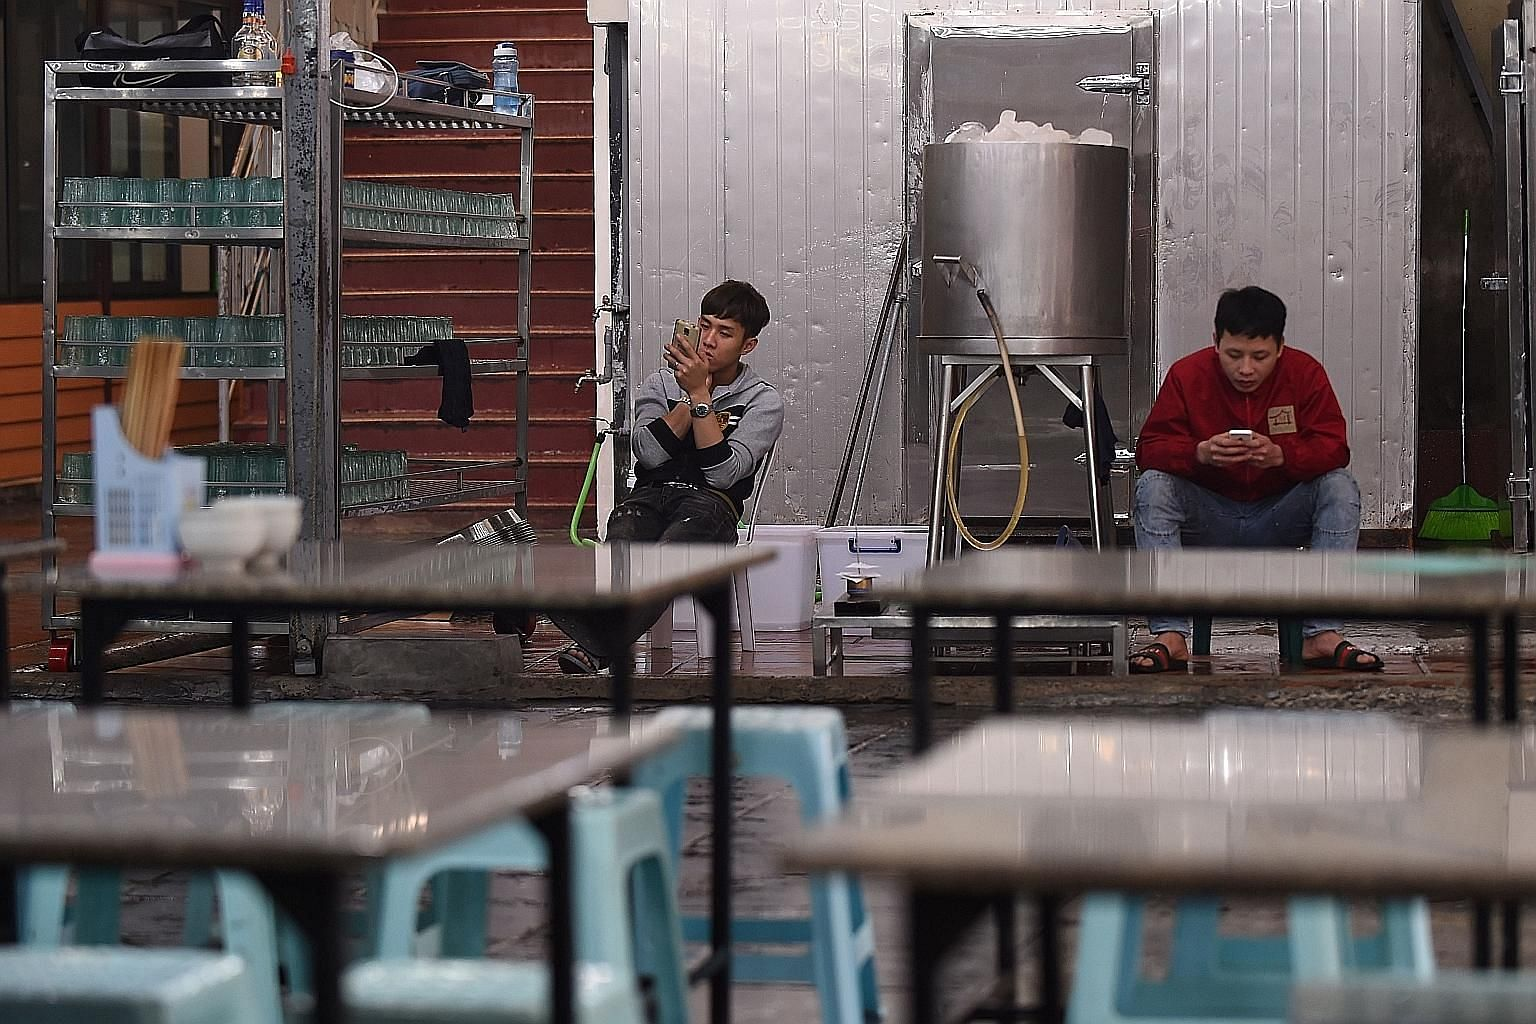 Service staff waiting for customers at a Hanoi bar yesterday. A tough new drink-driving law is part of an effort to change the drinking culture in Vietnam, one of the world's fastest-growing markets for beer. PHOTO: AGENCE FRANCE-PRESSE